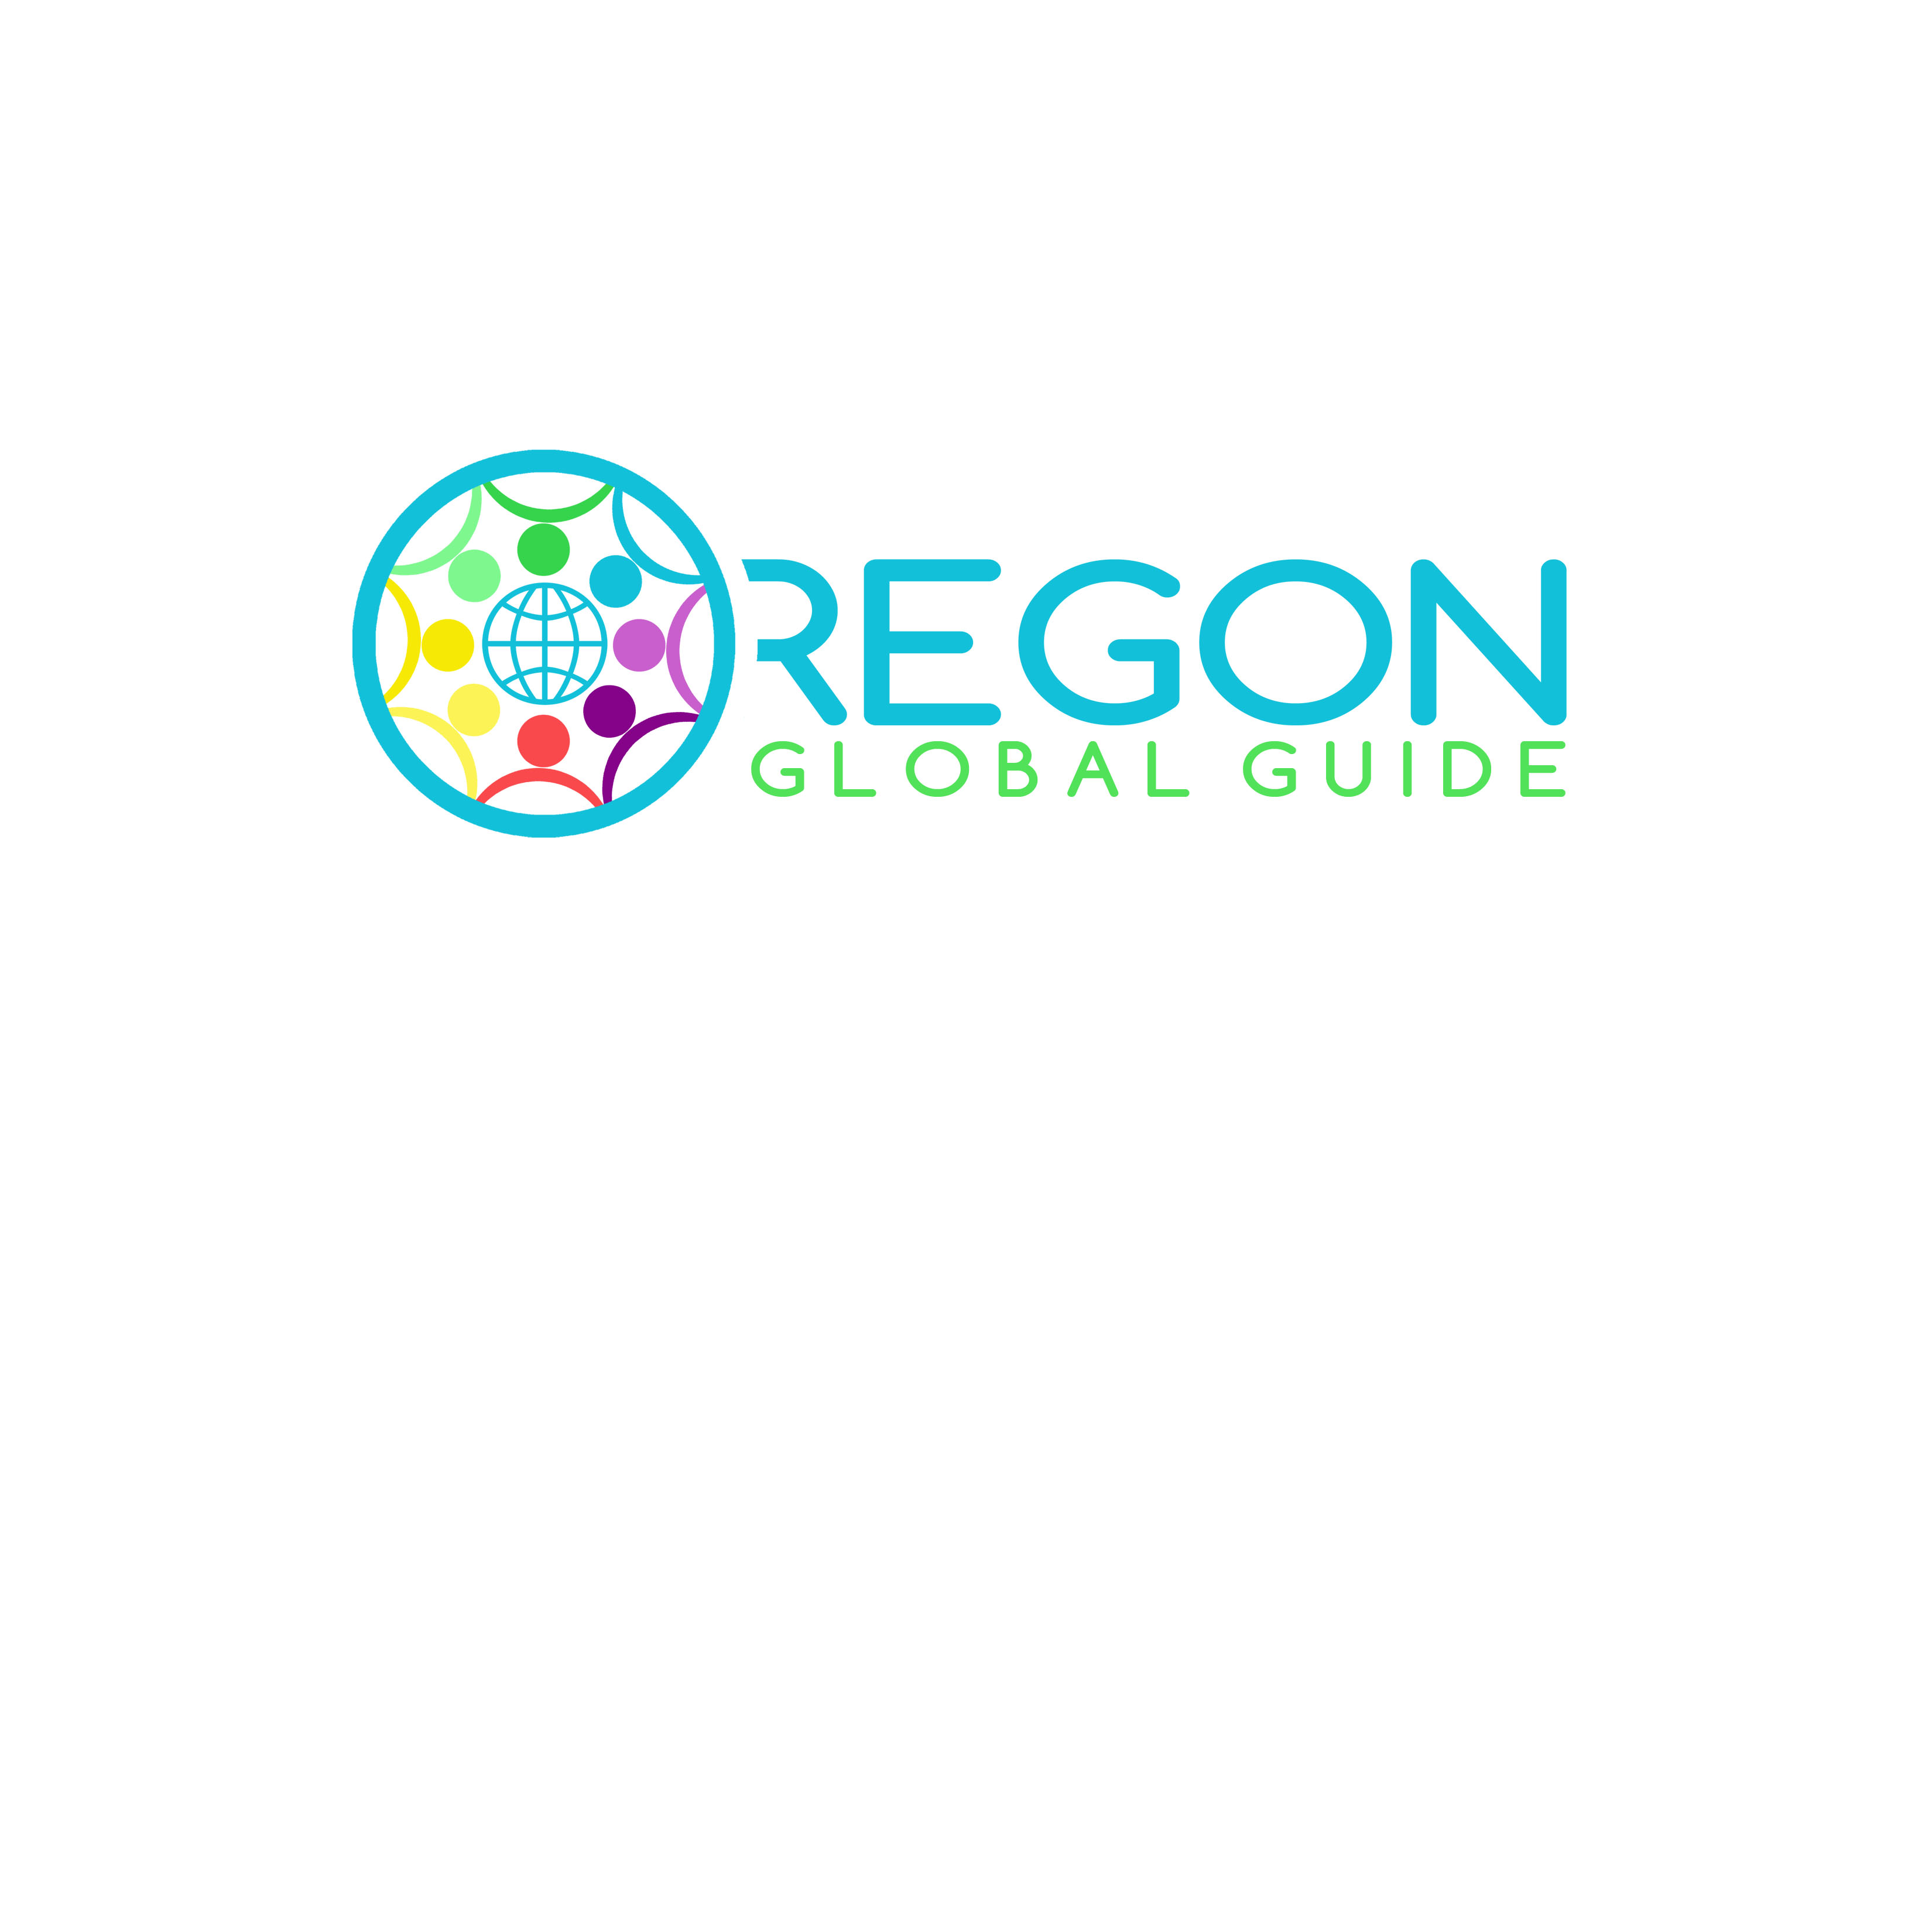 Logo Design by Allan Esclamado - Entry No. 70 in the Logo Design Contest New Logo Design for Oregon Global Guide.